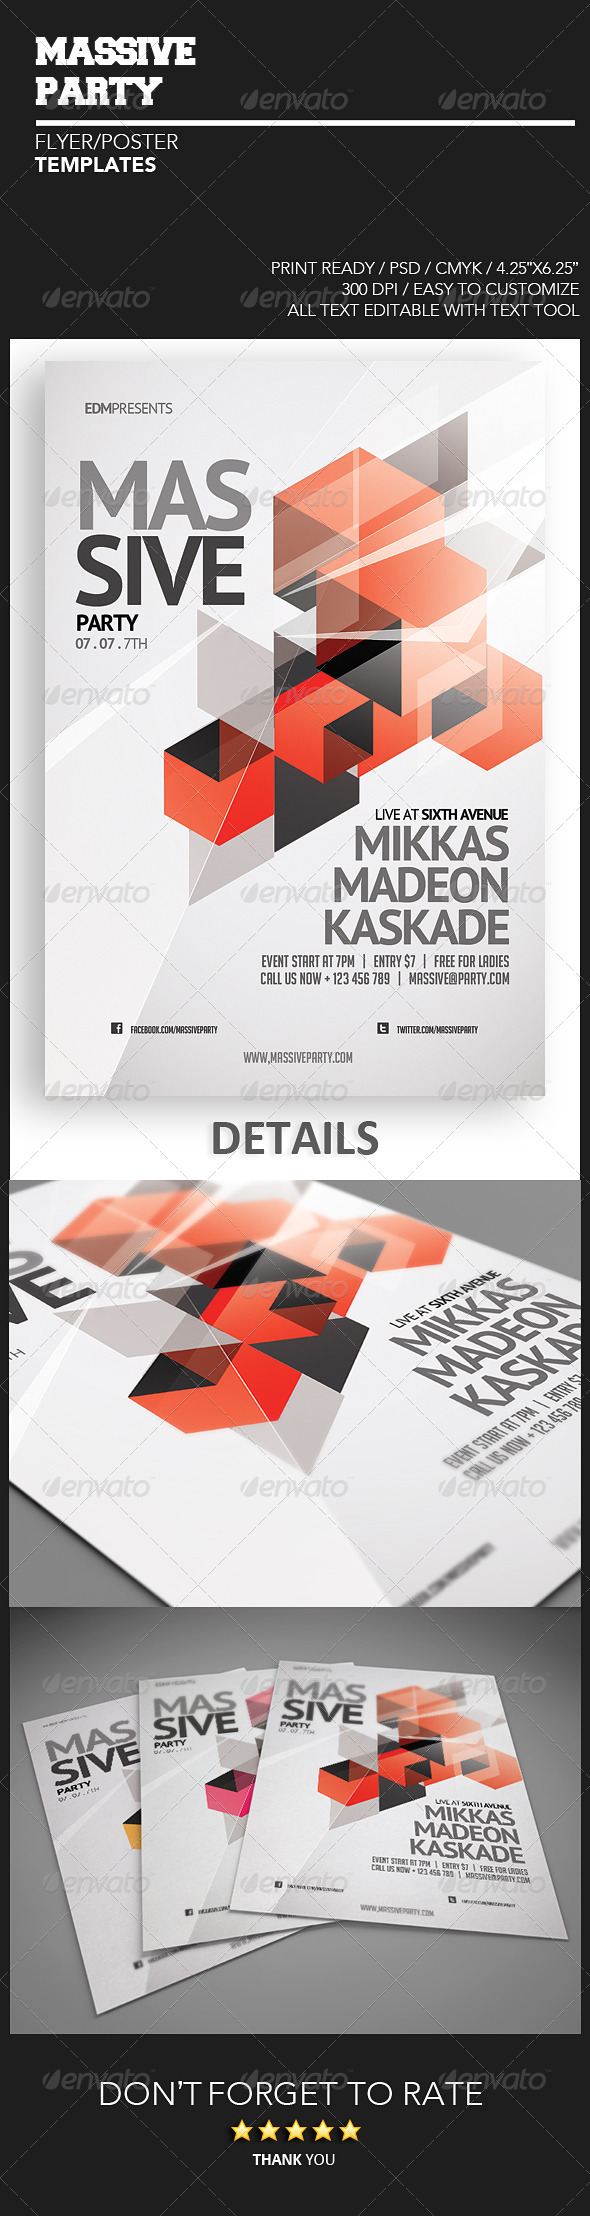 GraphicRiver Massive Party Flyer 4860249